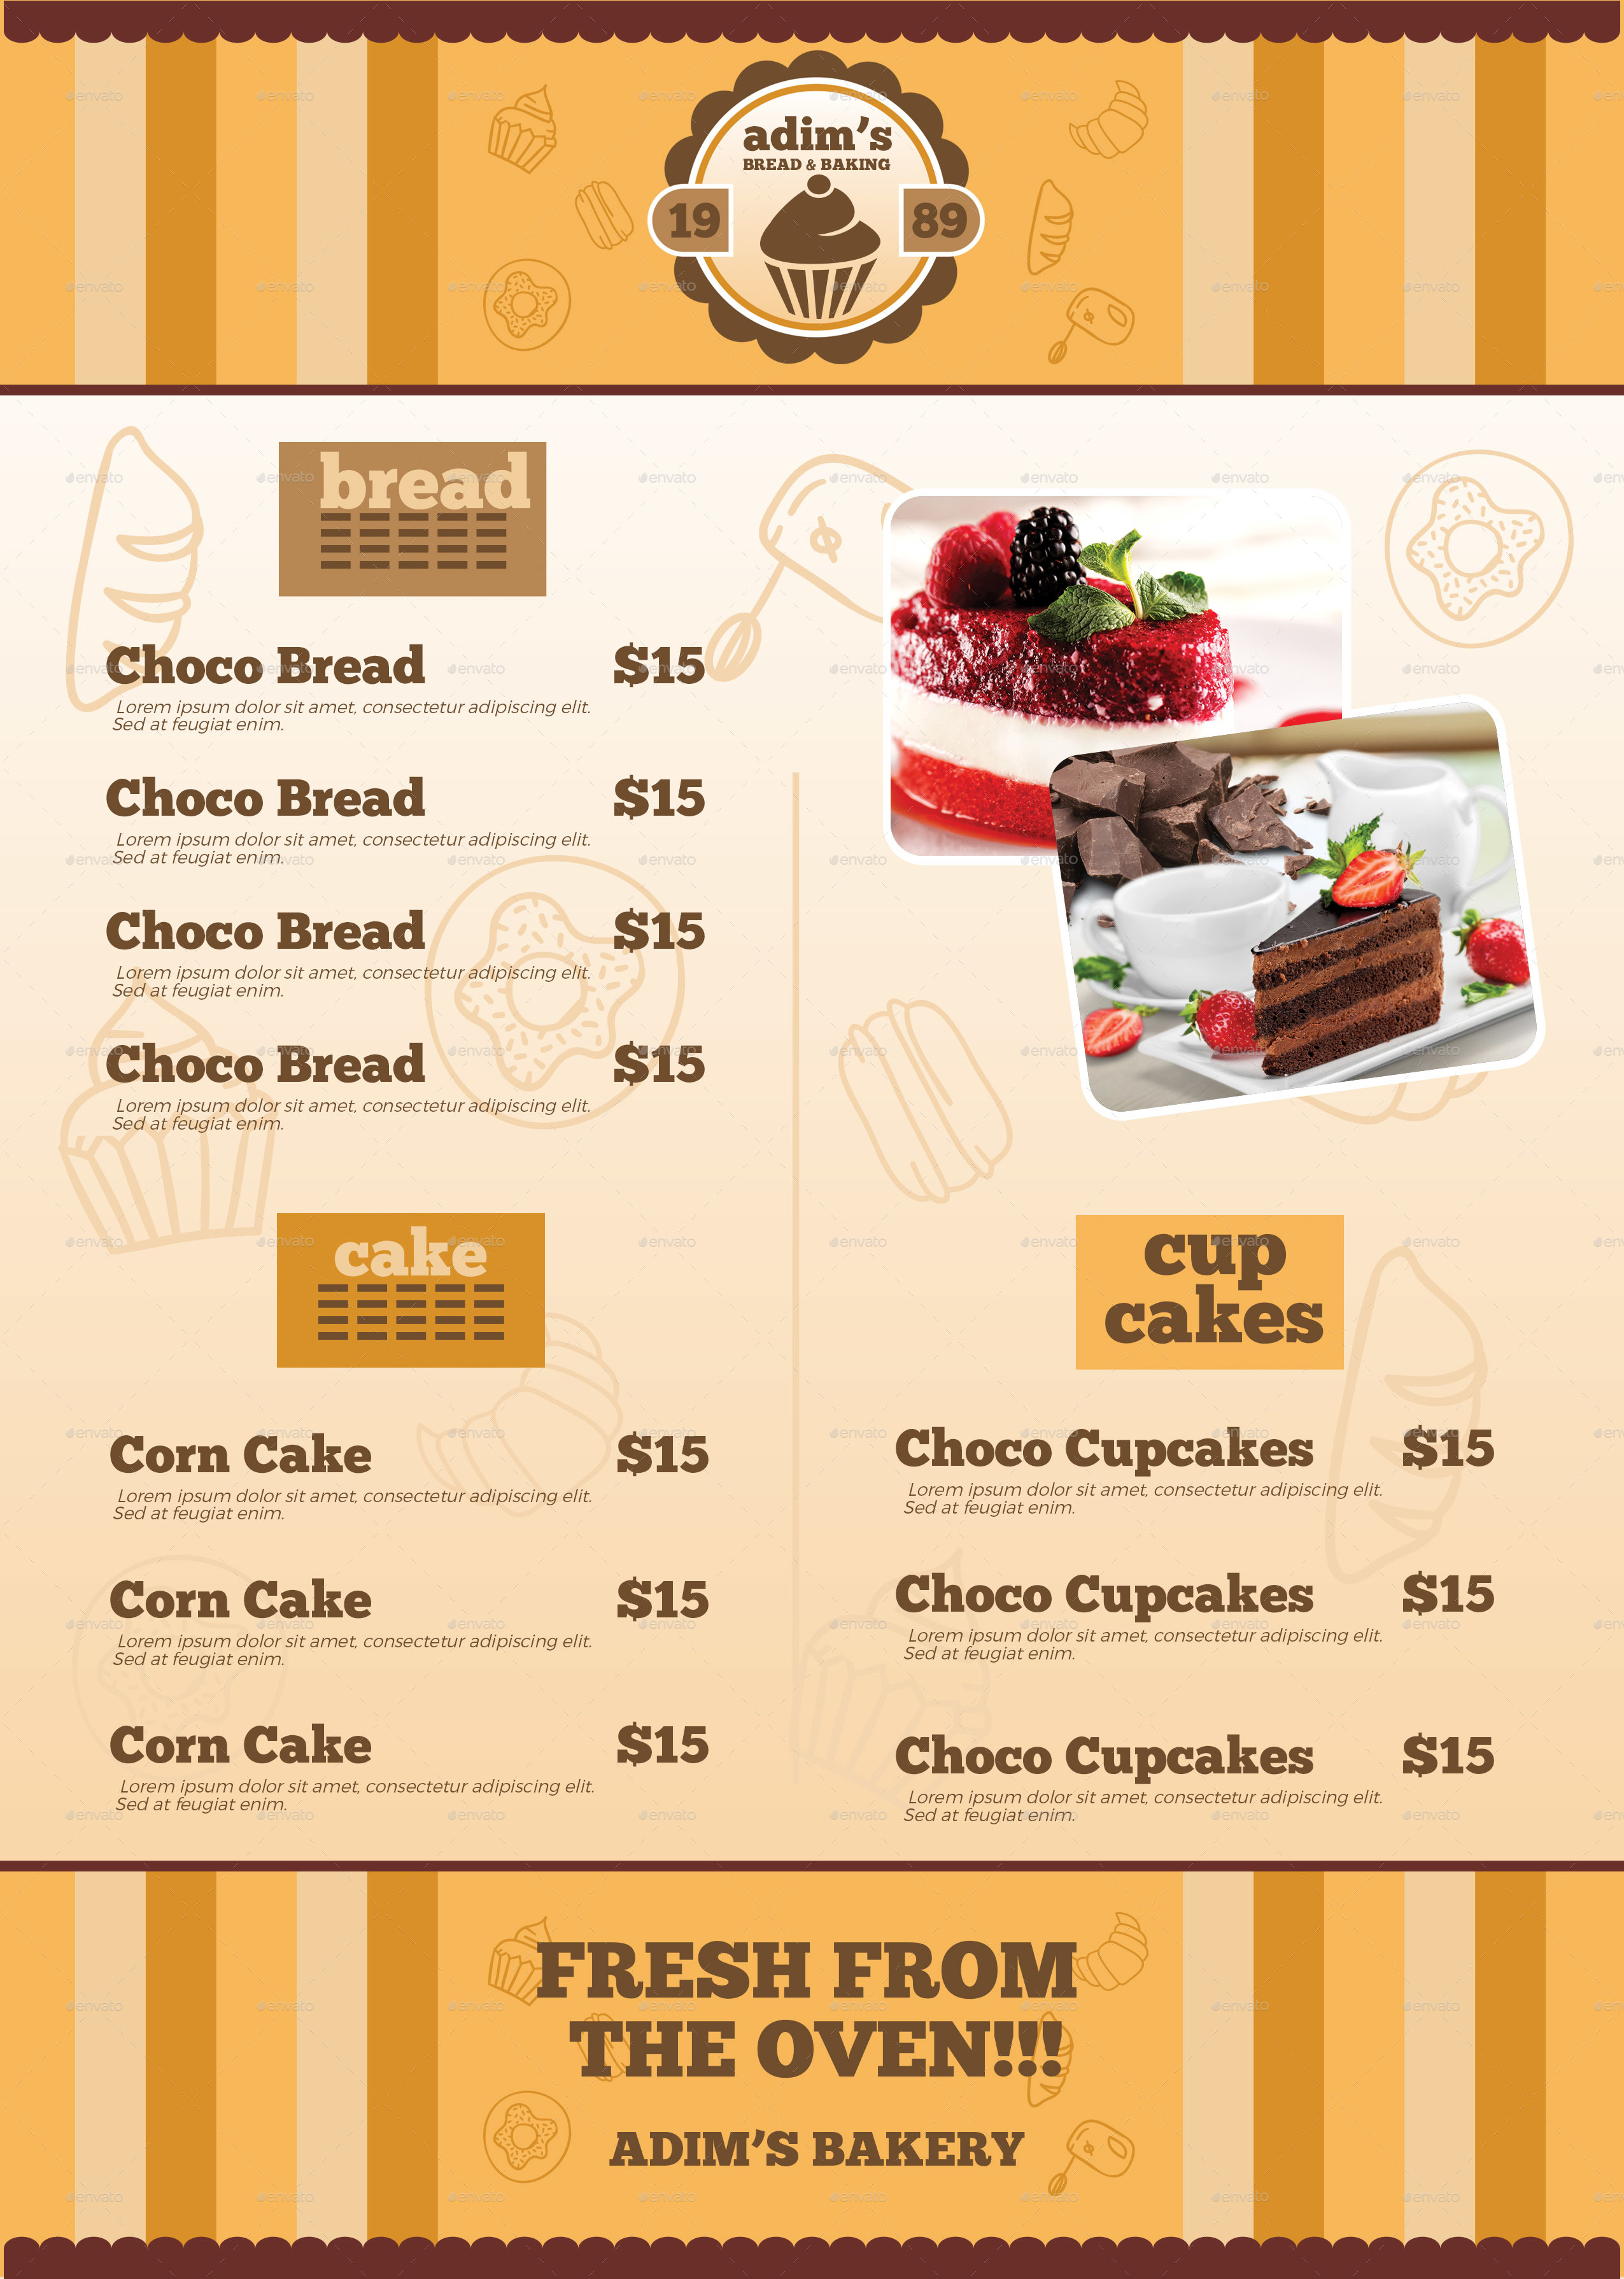 Bakery menu flyer template by adimasen graphicriver preview image setfrontg thecheapjerseys Images